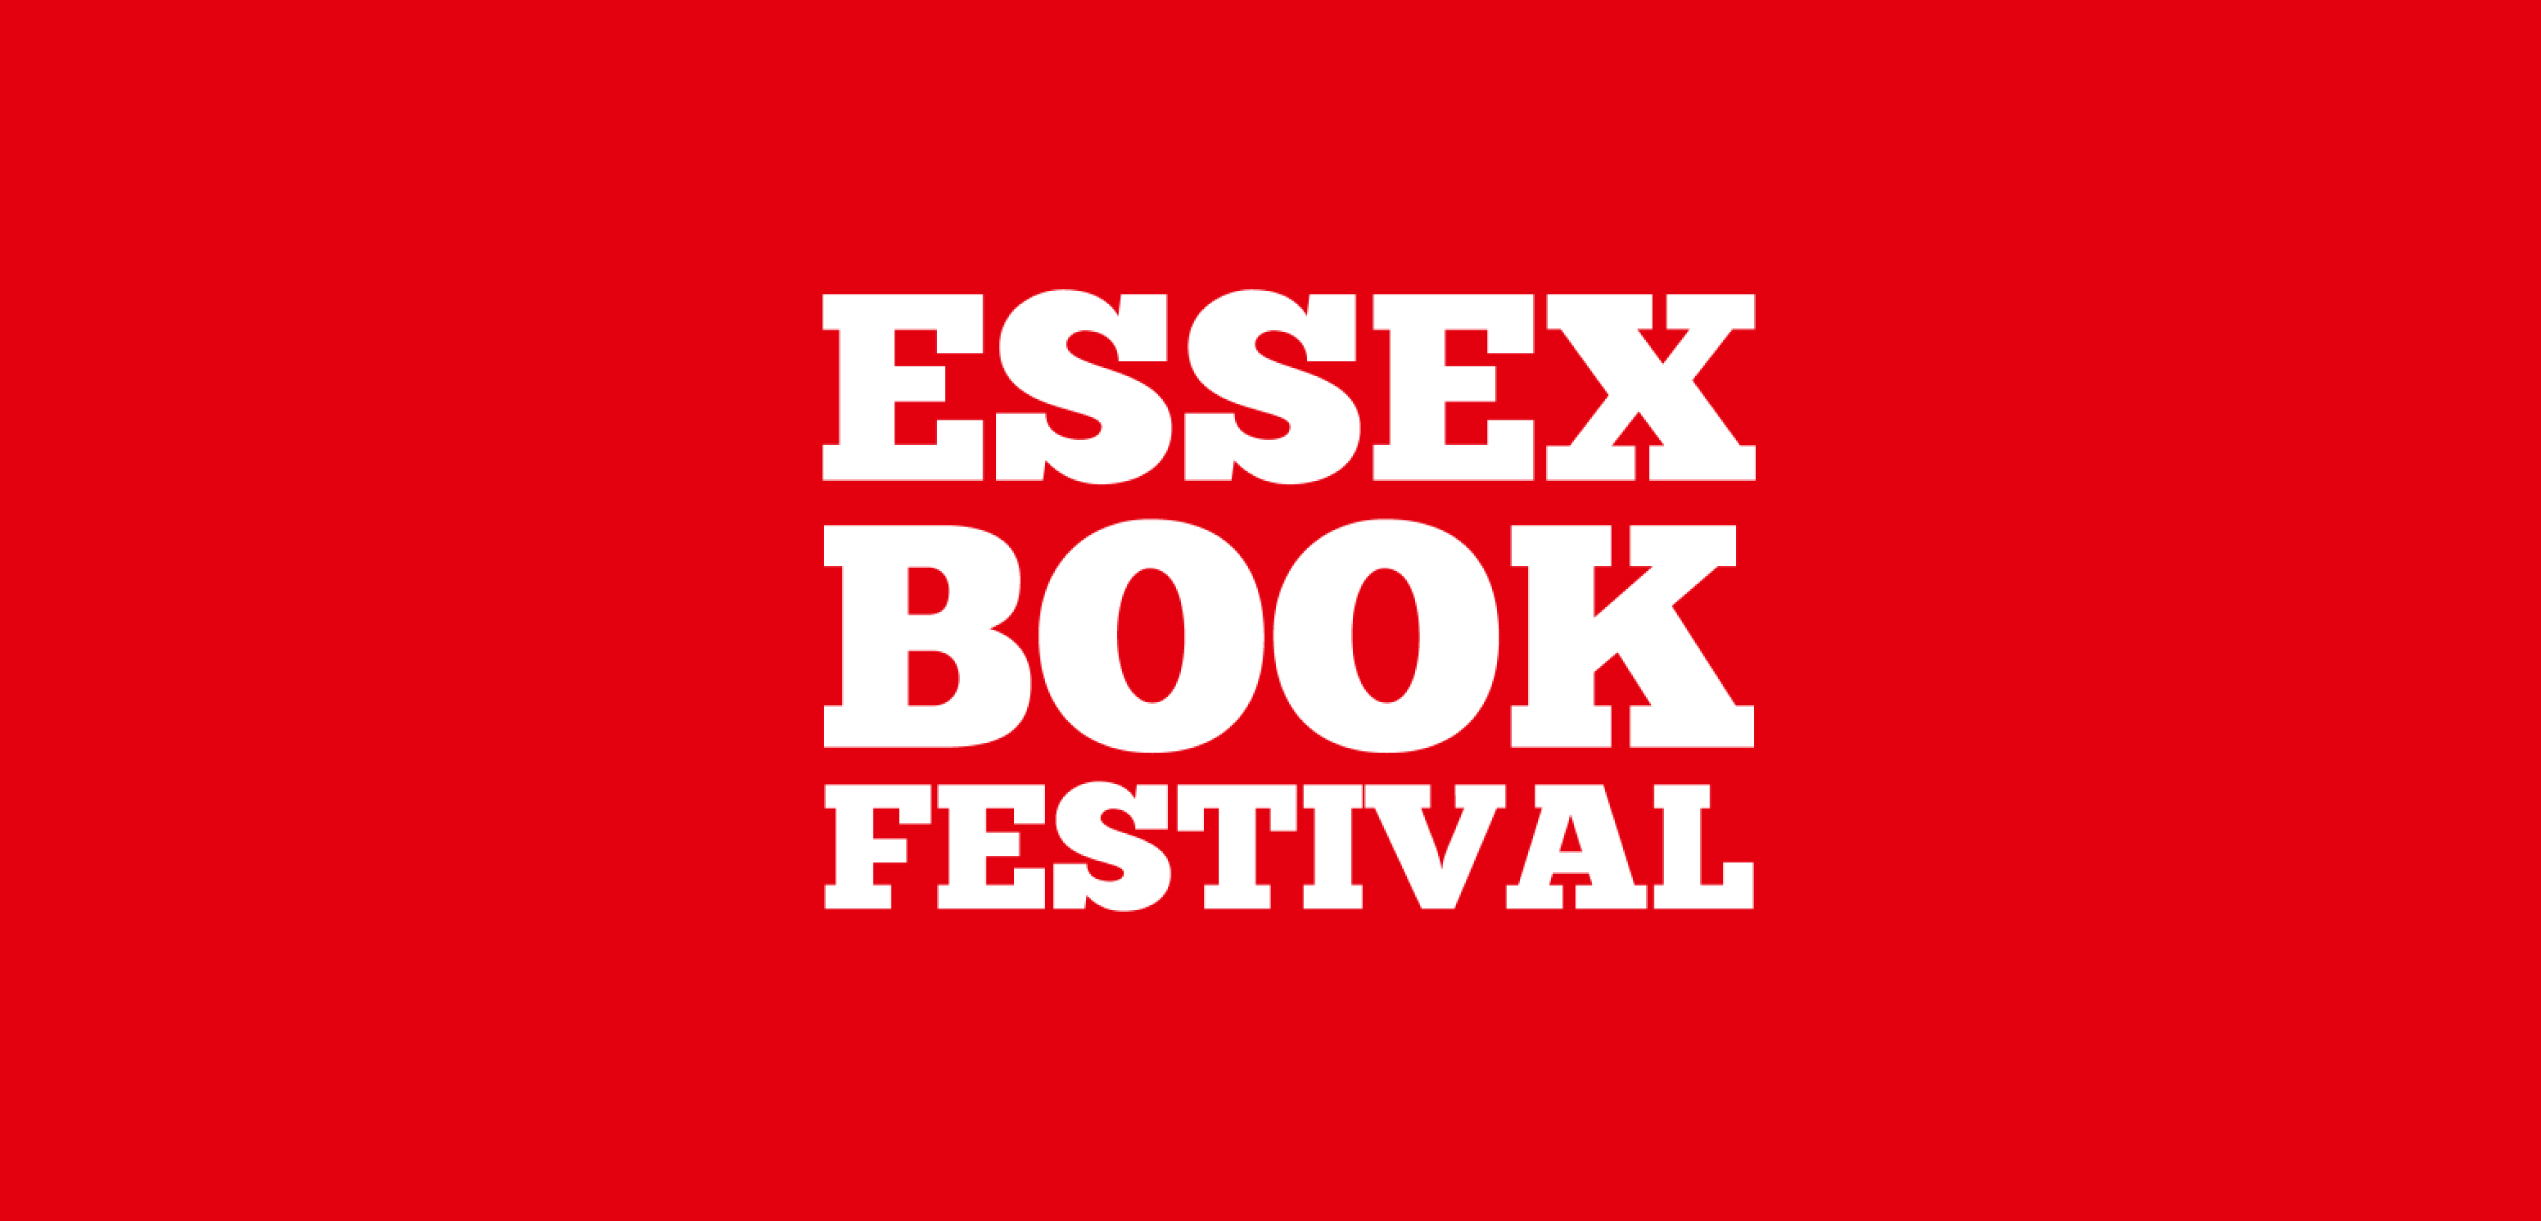 Essex Book Festival logo